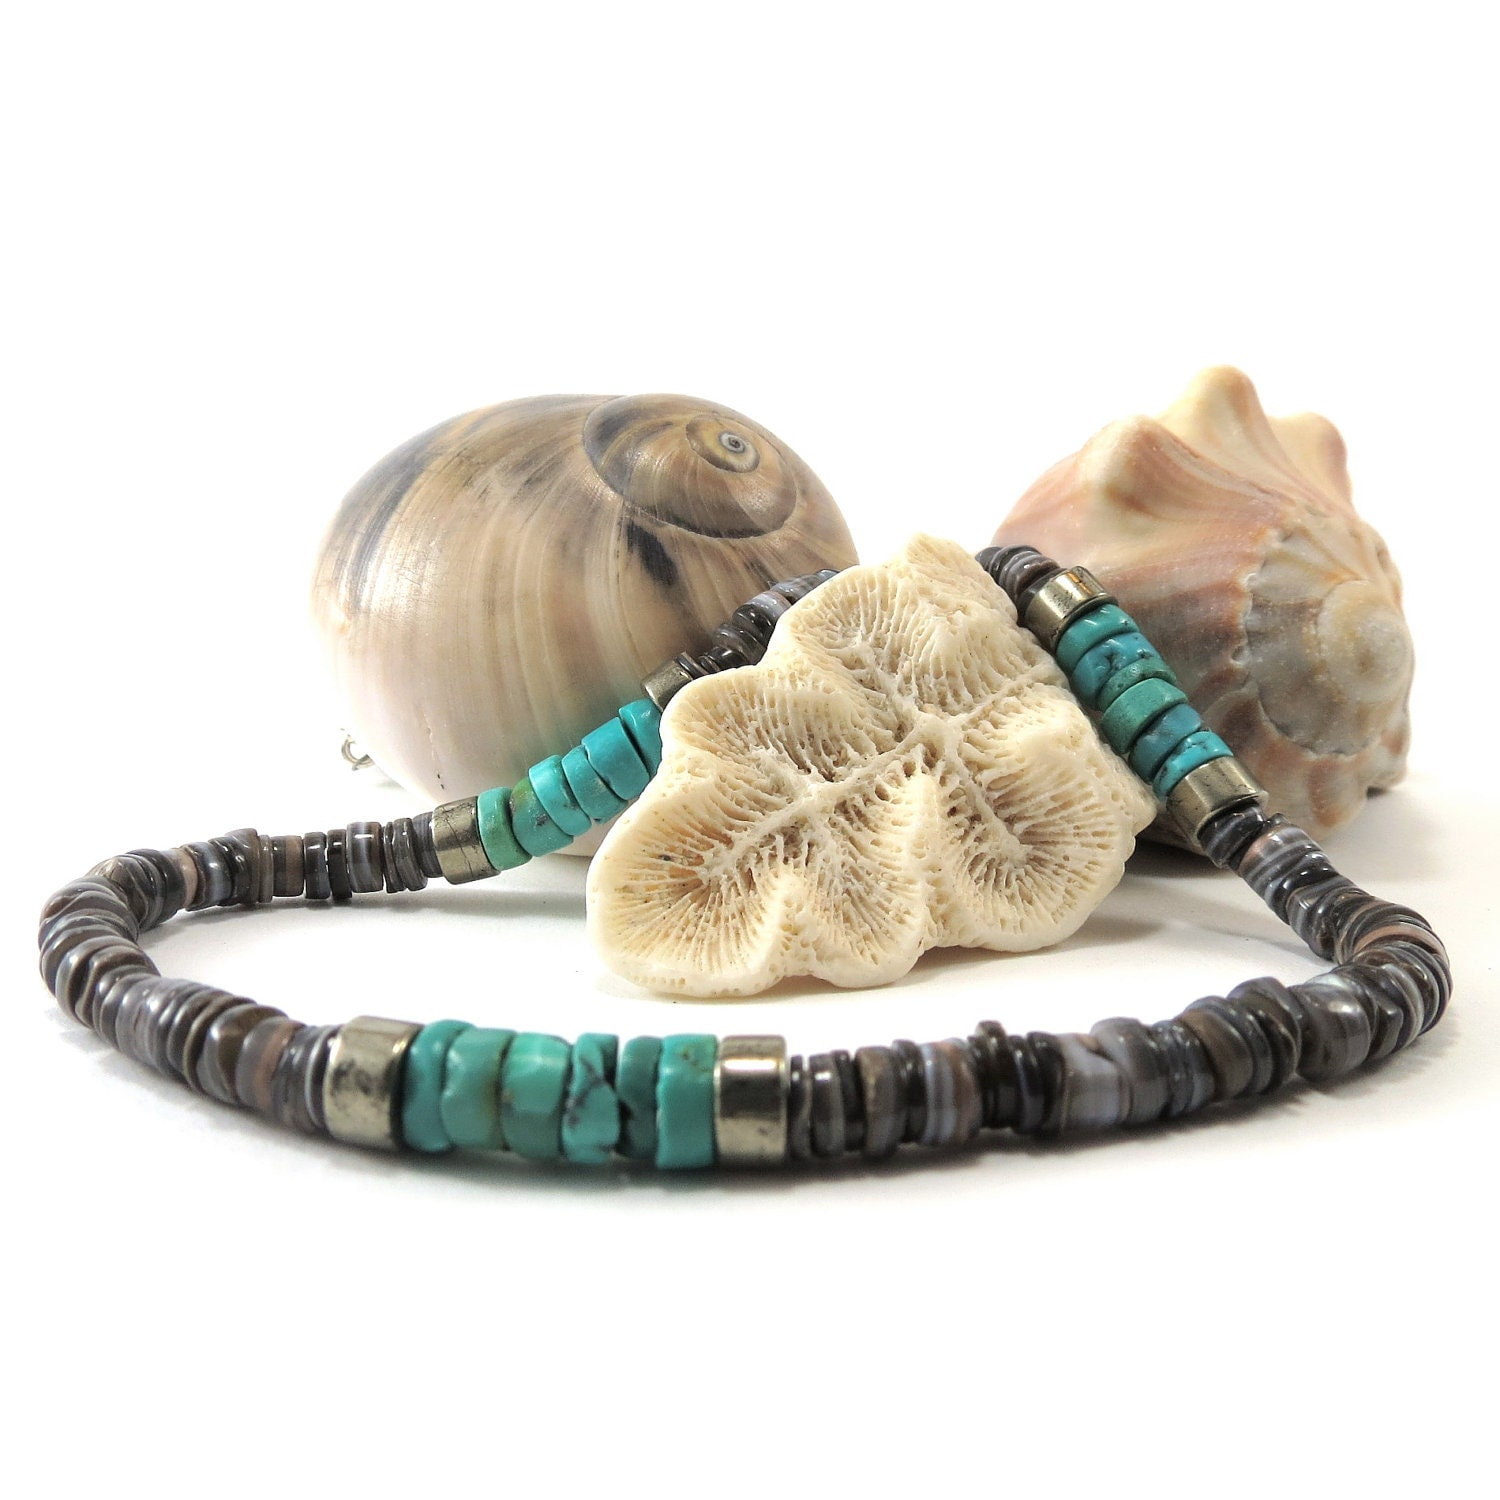 Men's Beaded Necklace of Turquoise, Shell and Pyrite - jagrocks